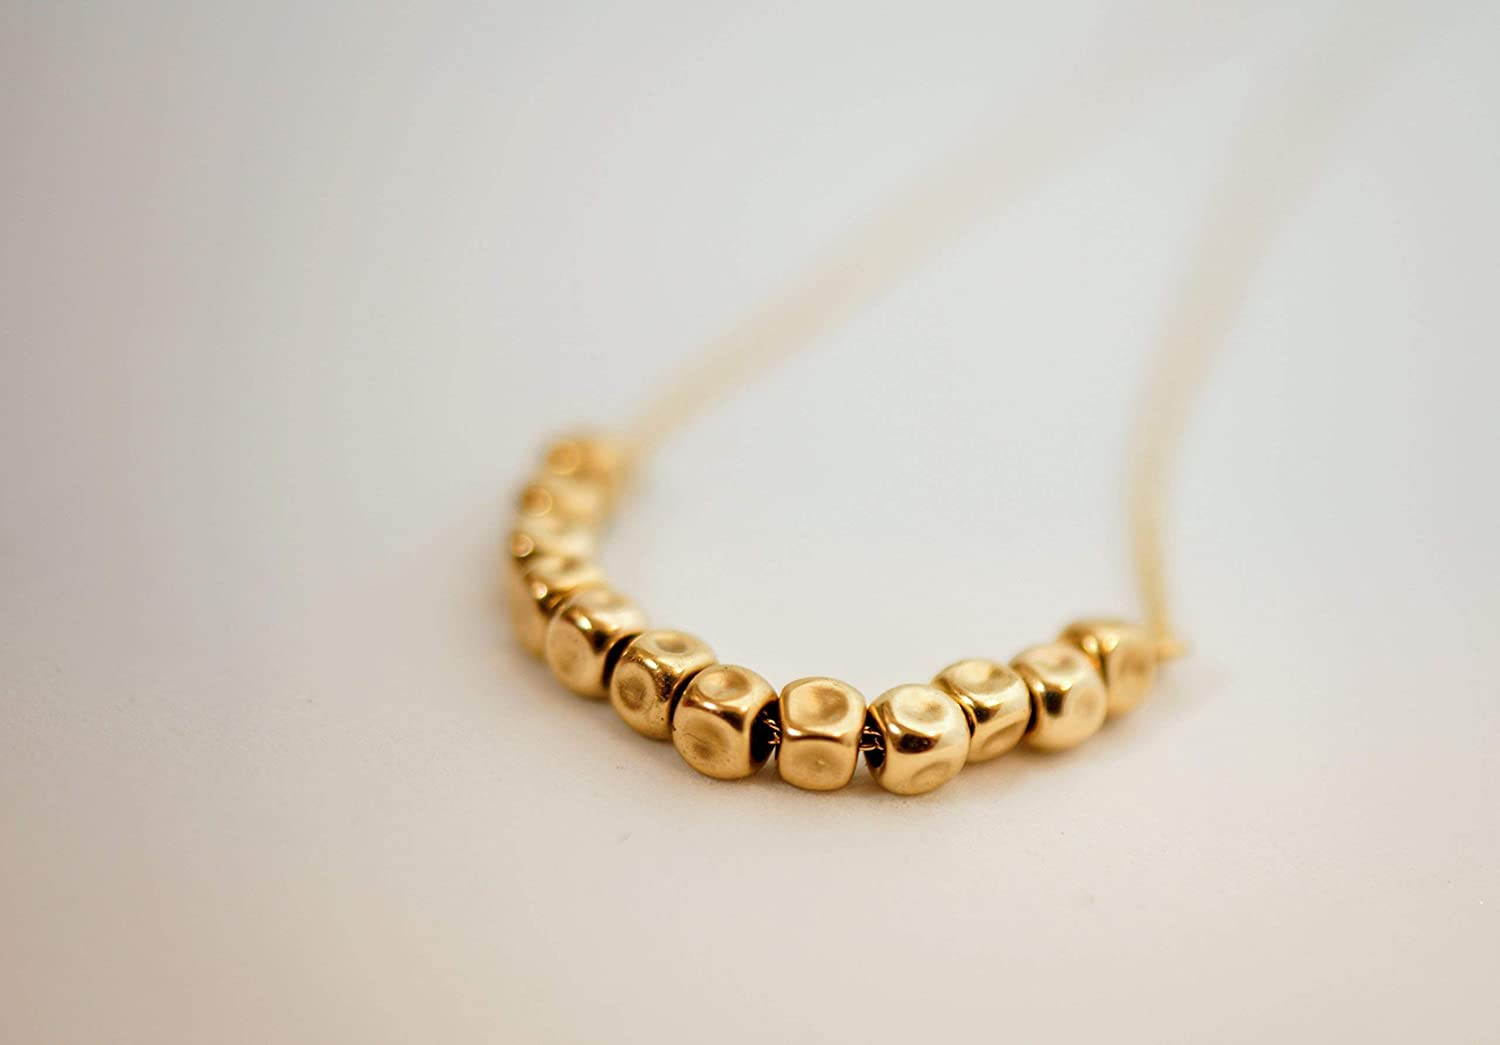 Dainty Nuggets Necklace for Women Satellite Necklace in Sterling Silver or Gold Filled